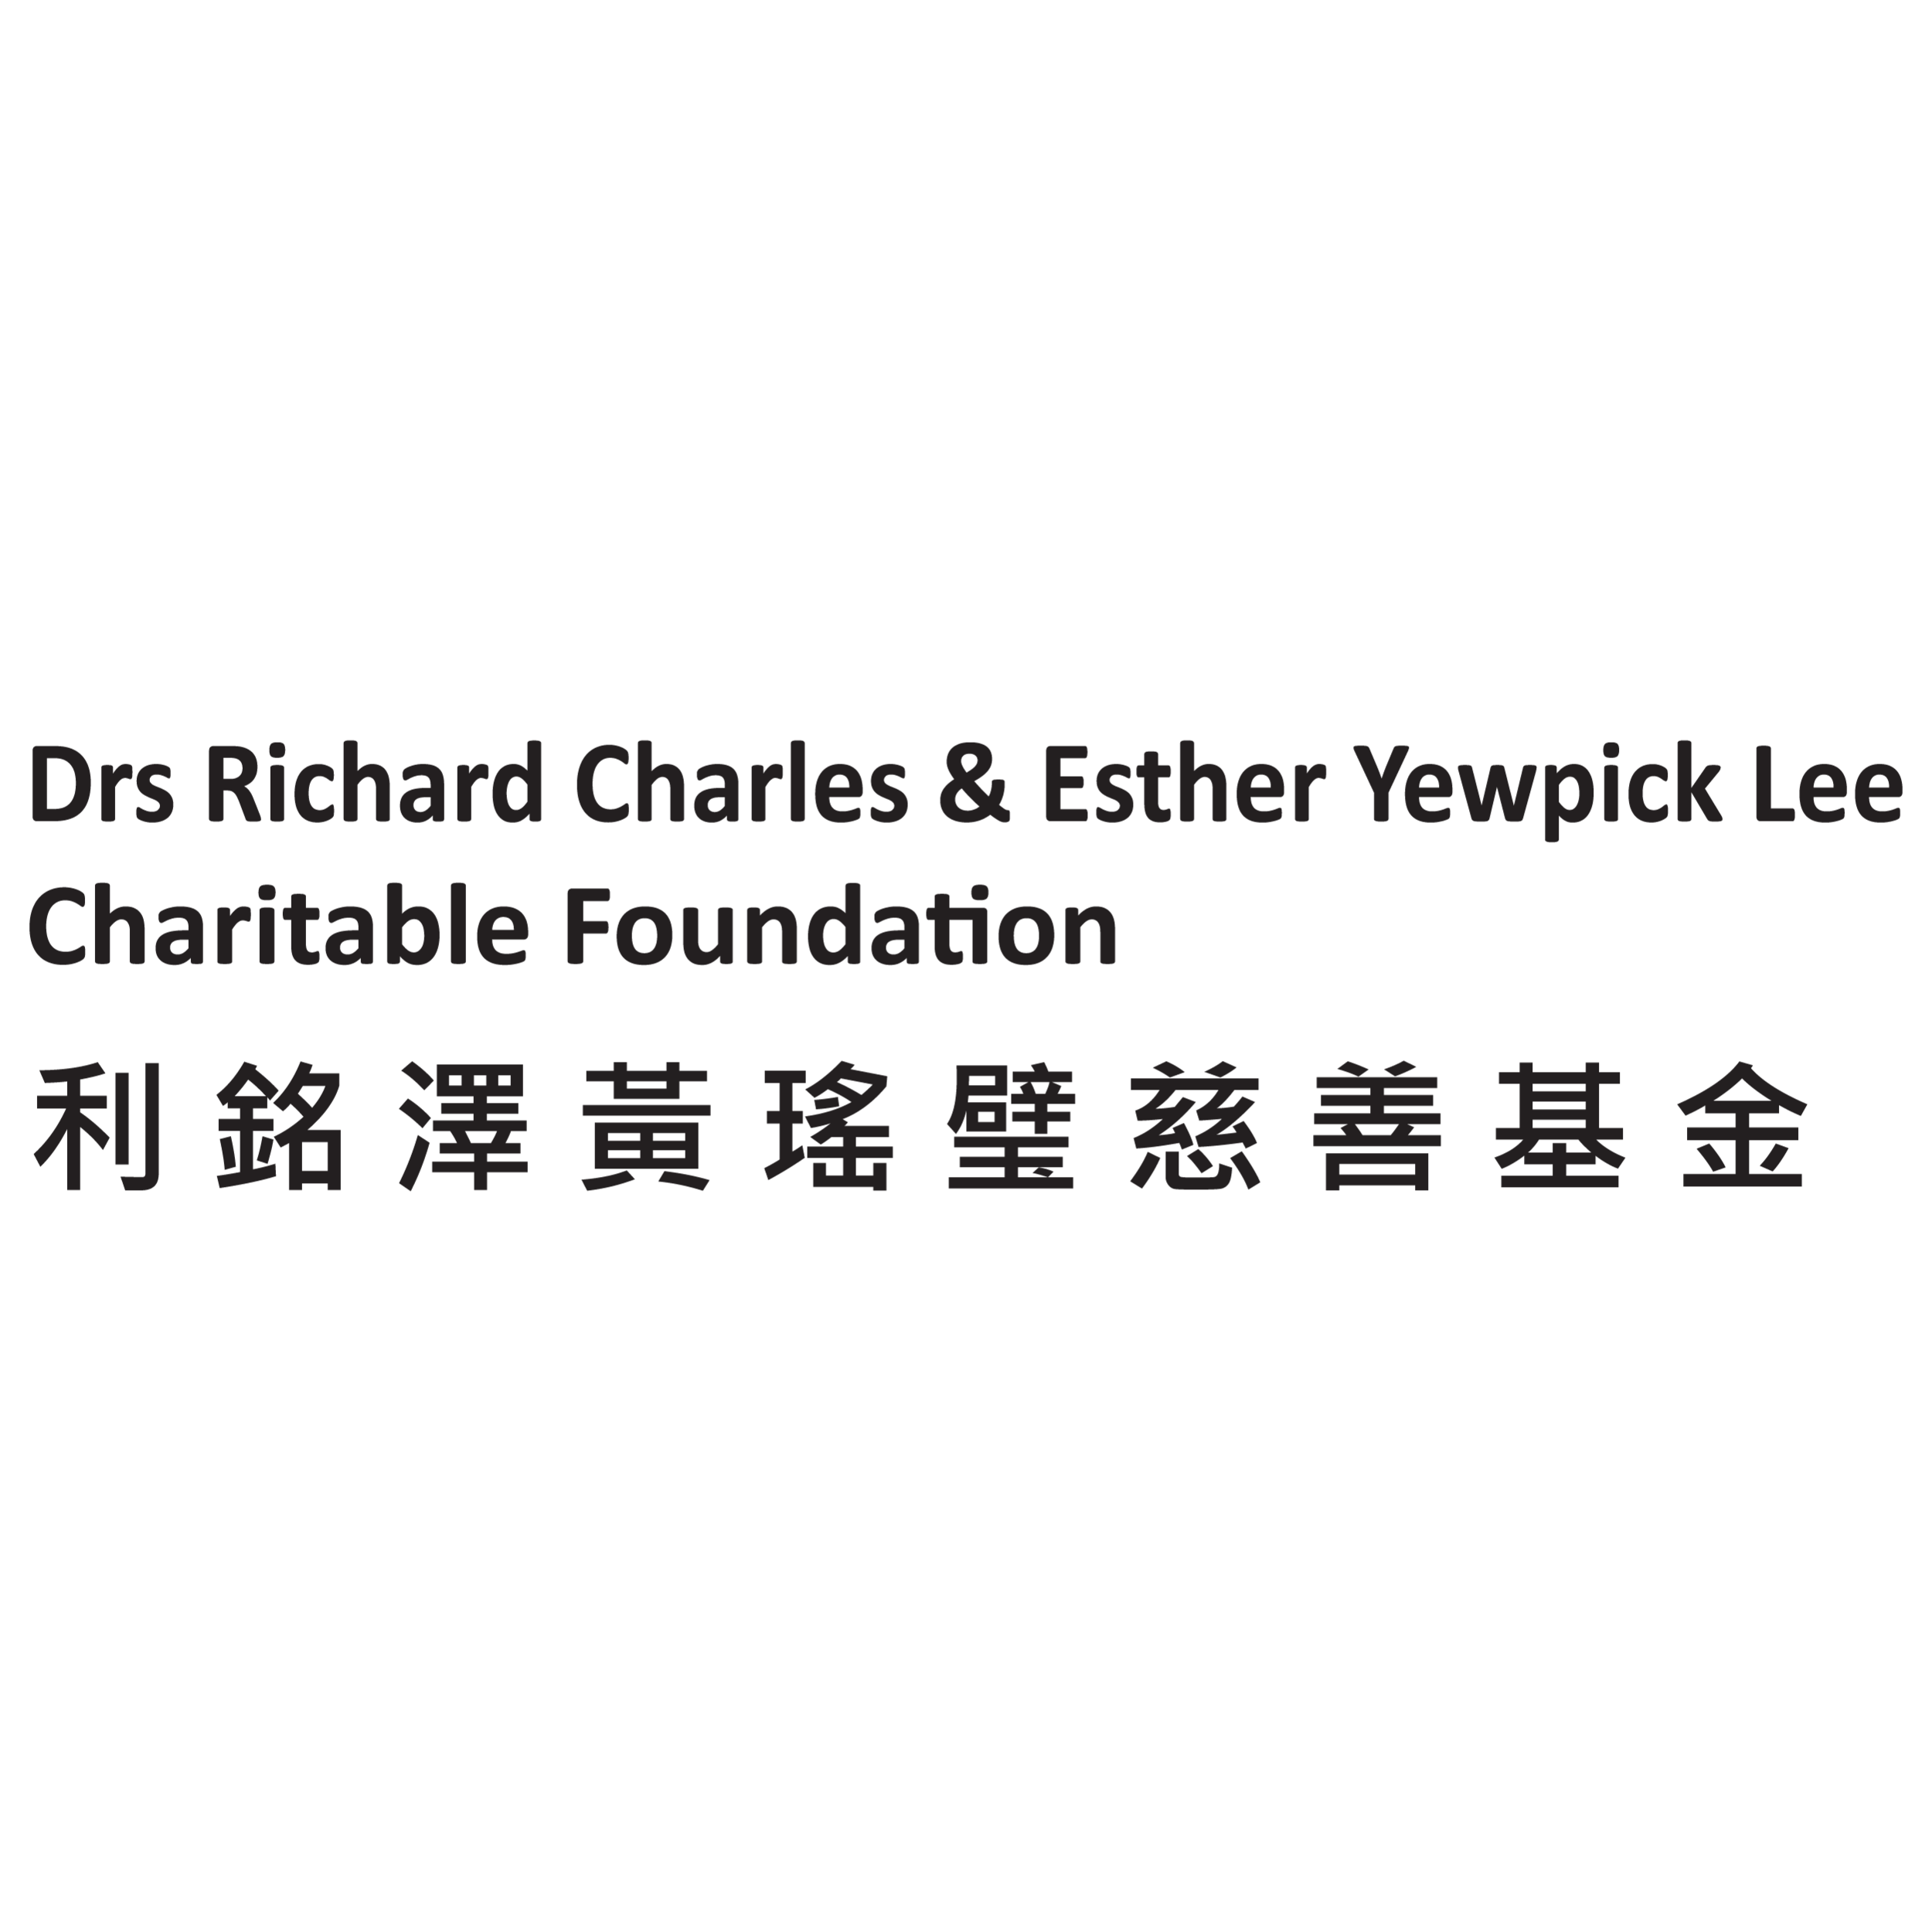 利銘澤黃瑤璧慈善基金 Drs Richard Charles & Esther Yewpick Lee Charitable Foundation